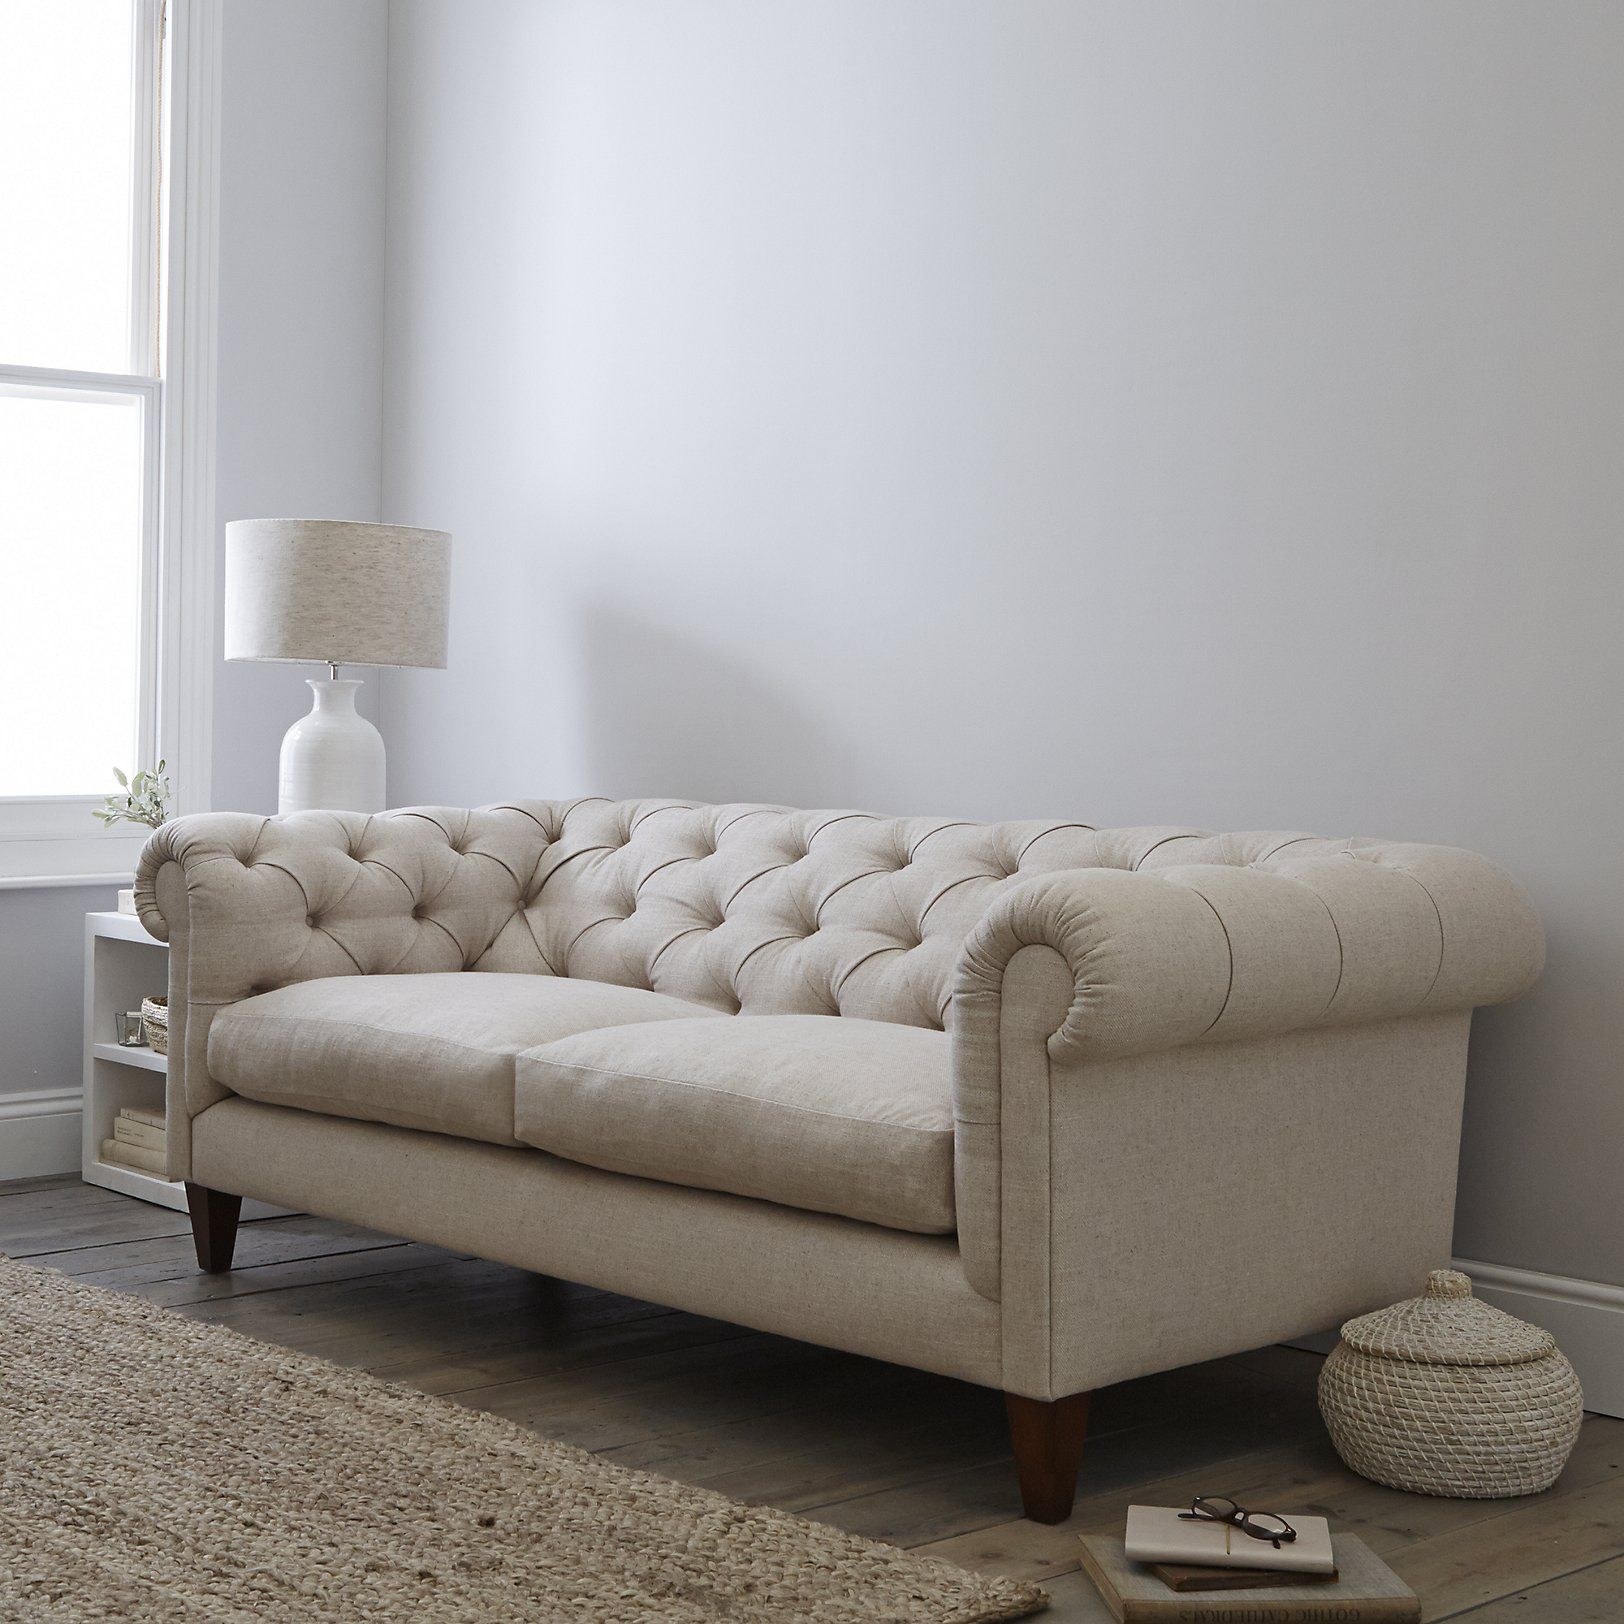 Ashley Furniture Ballari Linen Sofa Choosing A Good Bed Sofas Crate And Barrel Thesofa